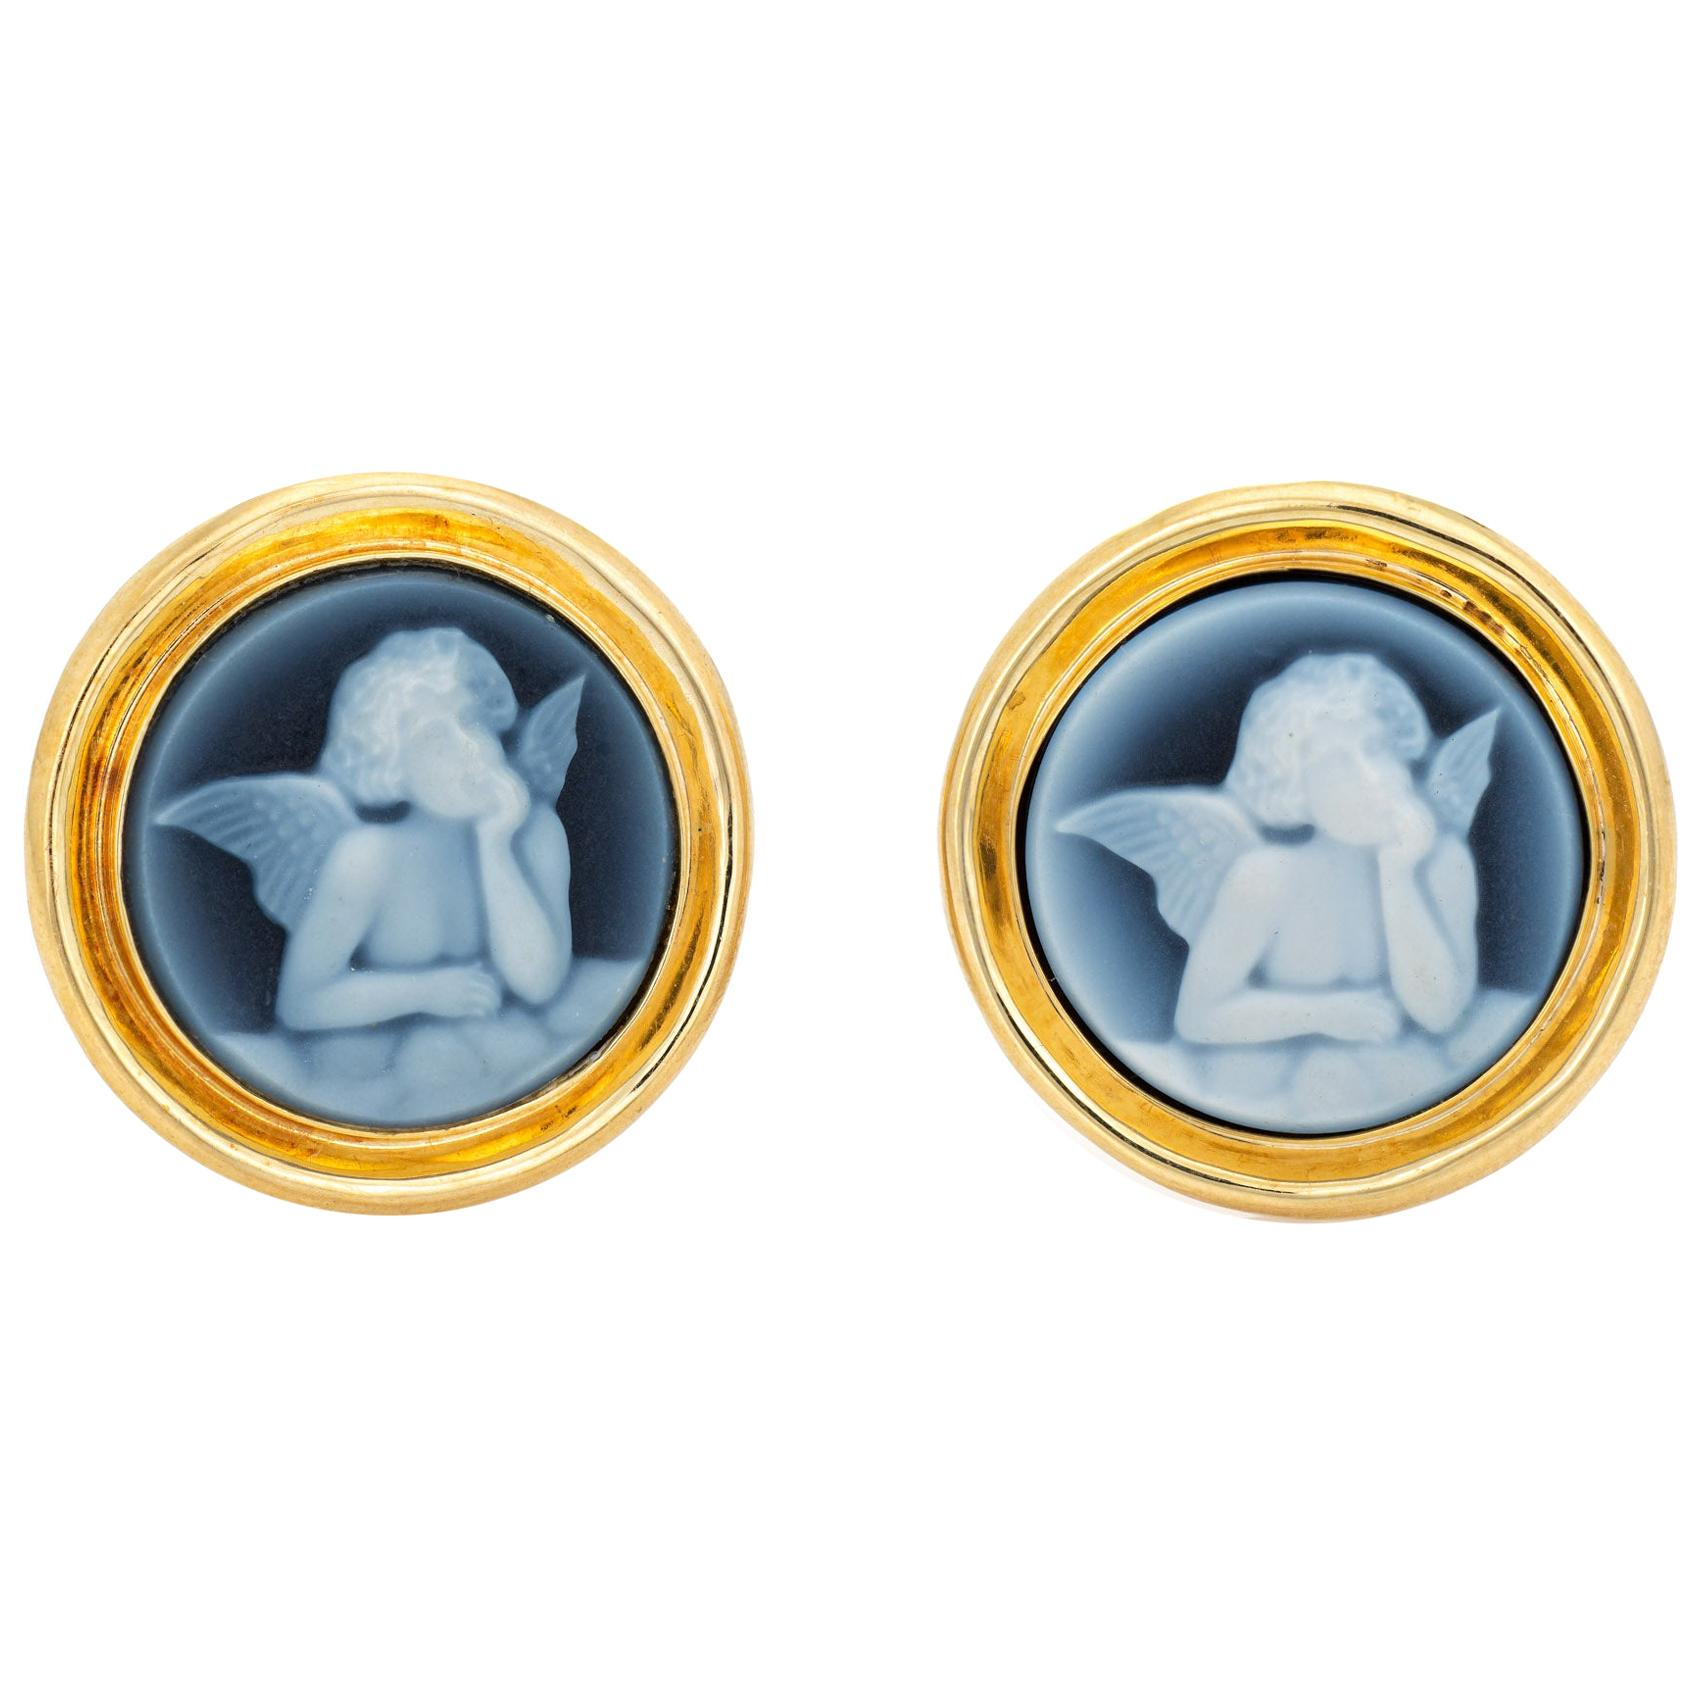 Winged Angel Cameo Button Earrings 14 Karat Yellow Gold Round Vintage Jewelry